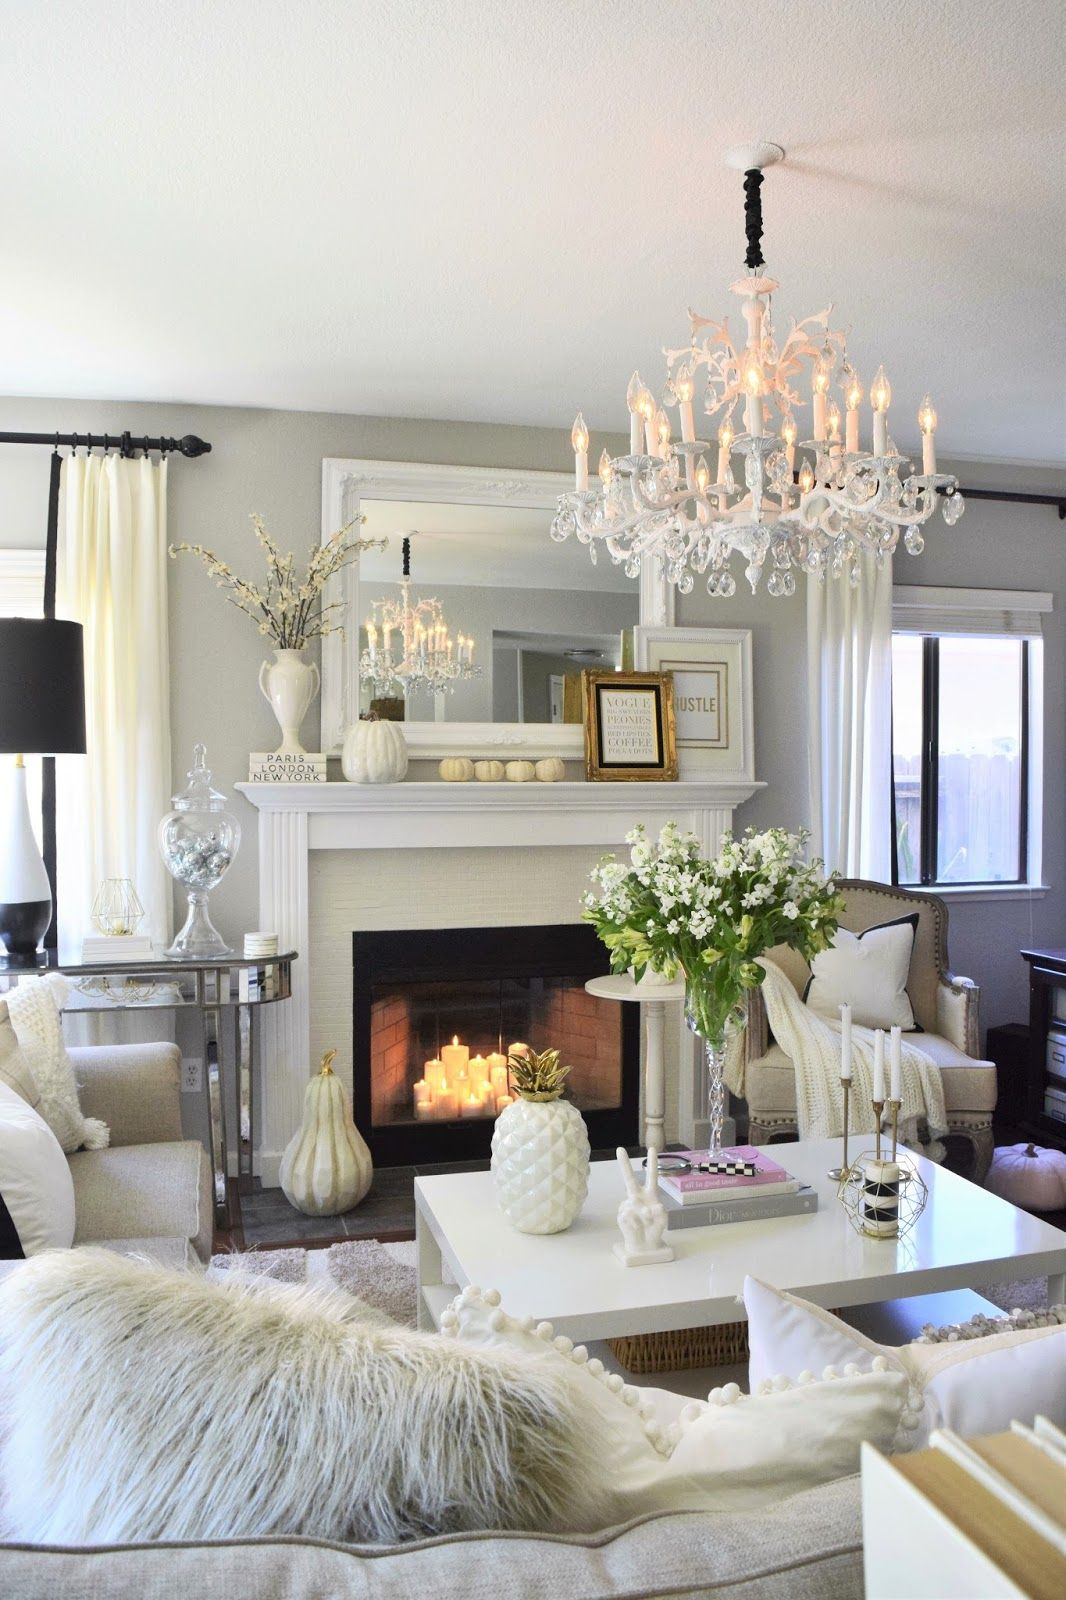 House Drawing Room Designs: The Case For Decorating With Neutrals